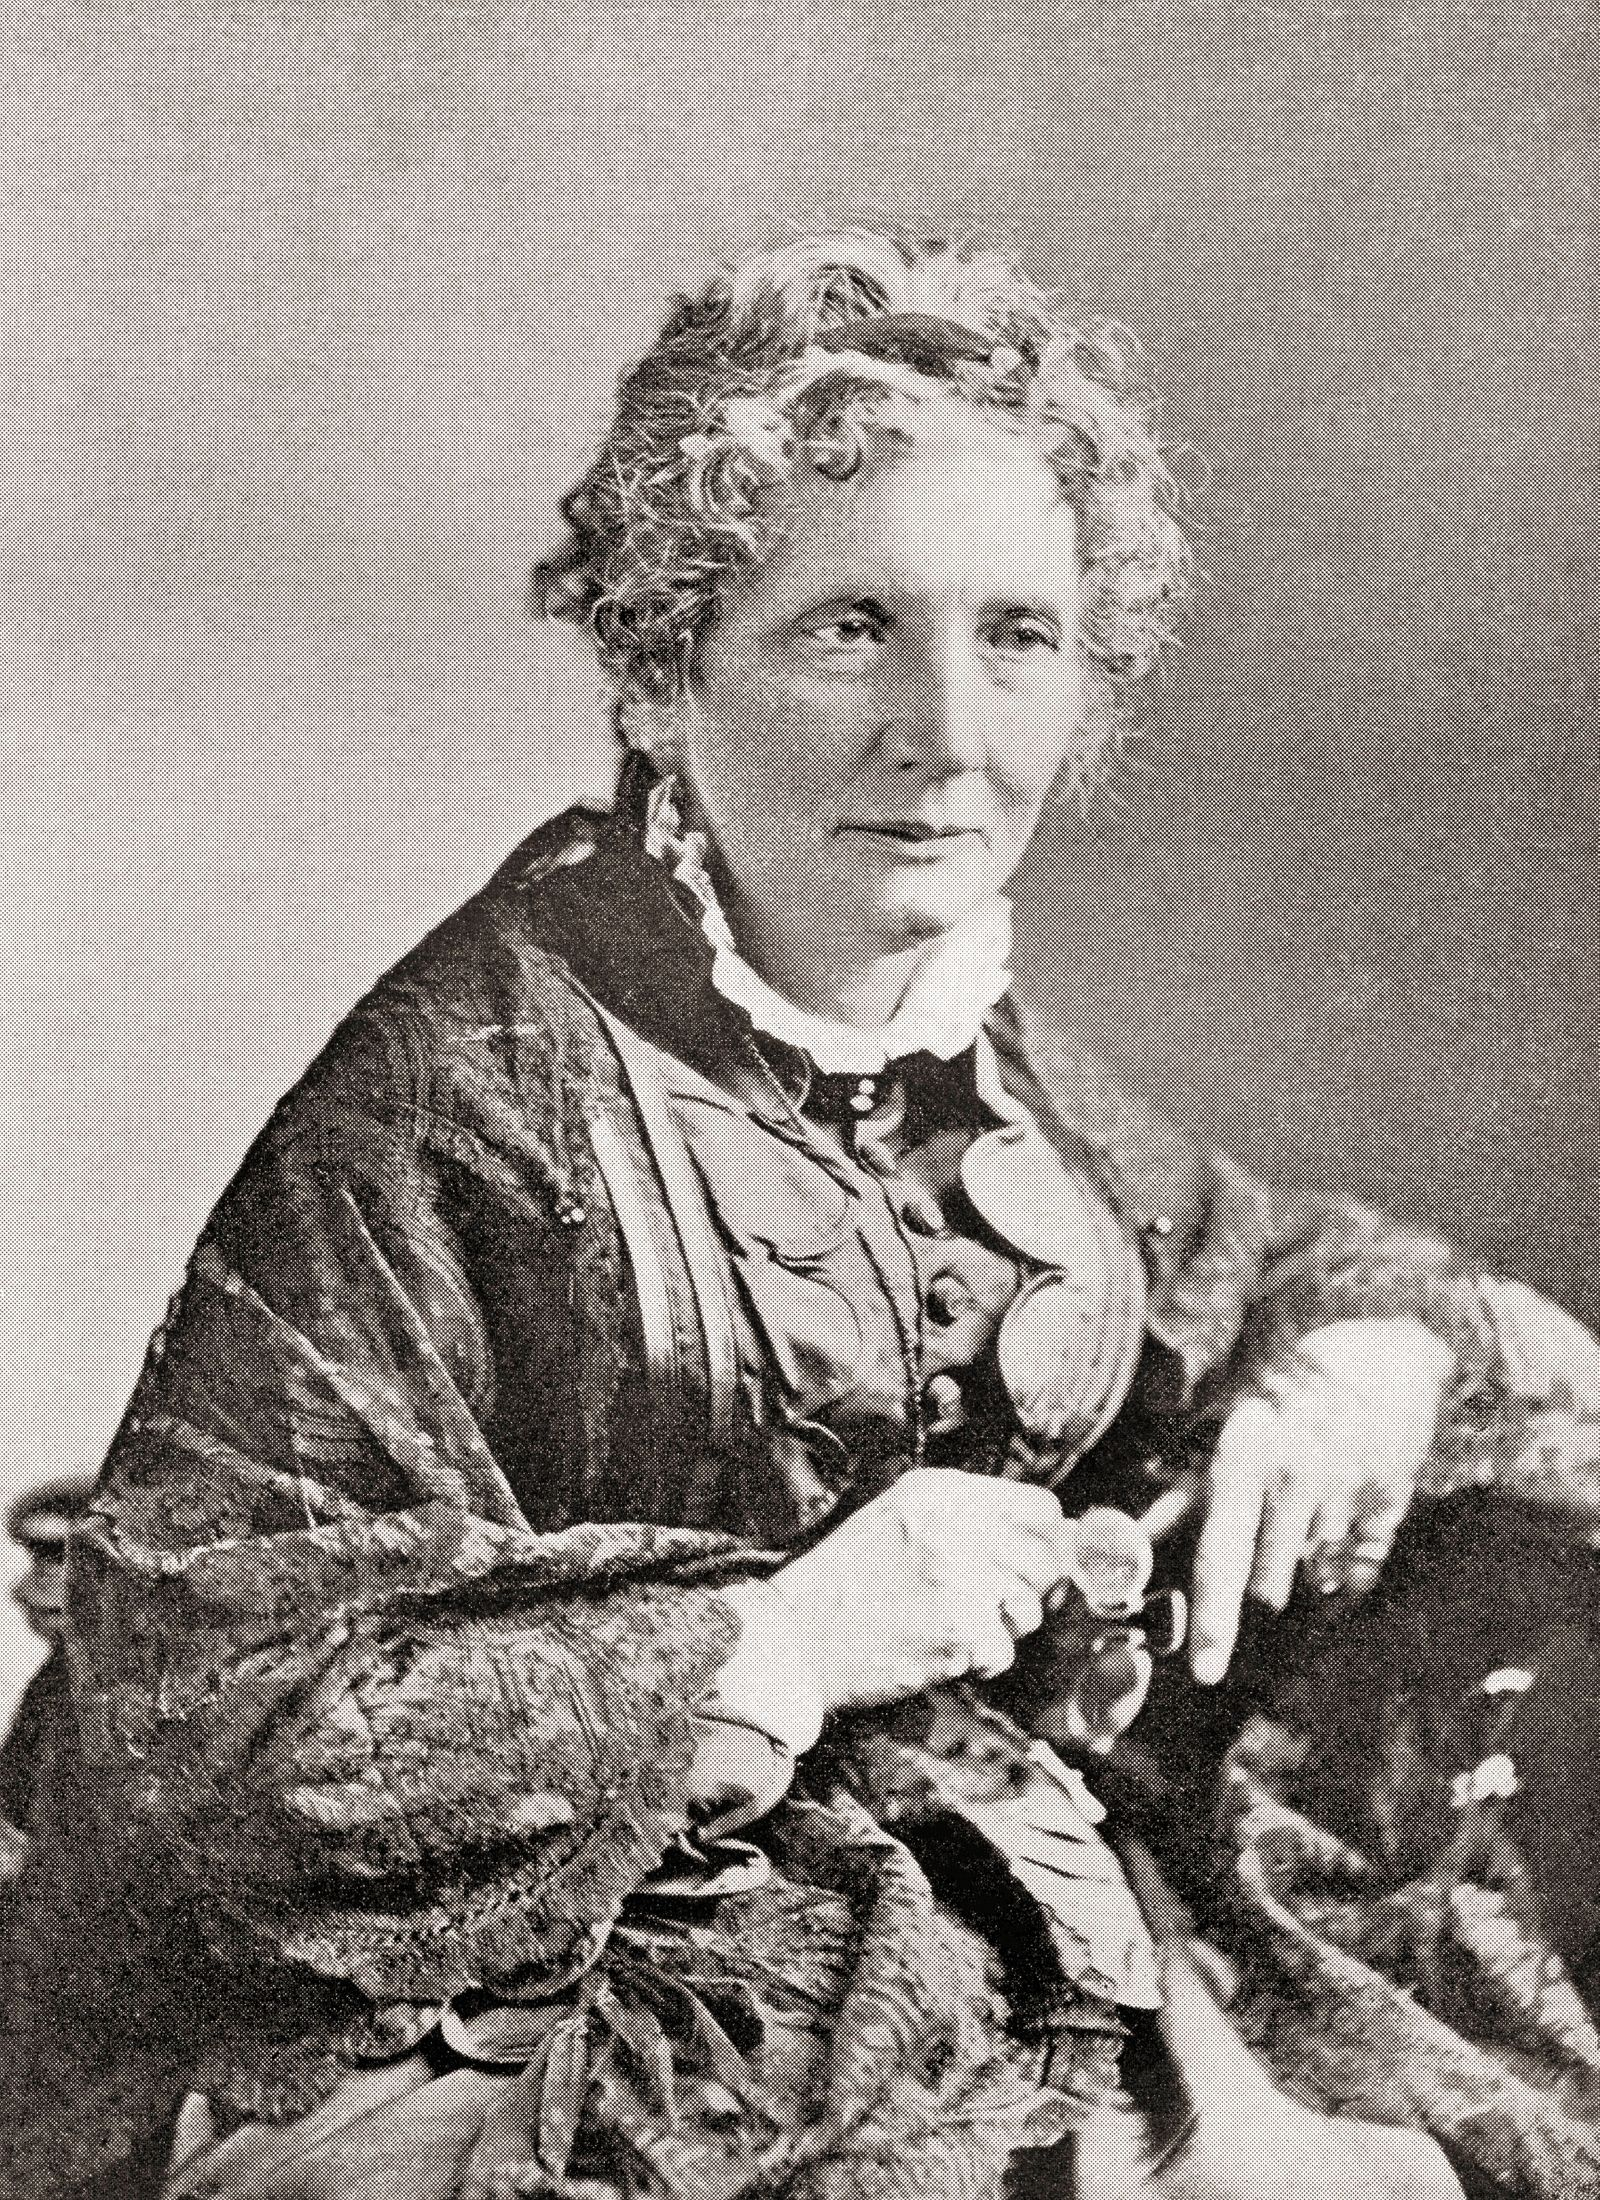 Harriet Elisabeth Beecher Stowe, 1811 1896. American abolitionist and author. From The International Library of Famous L